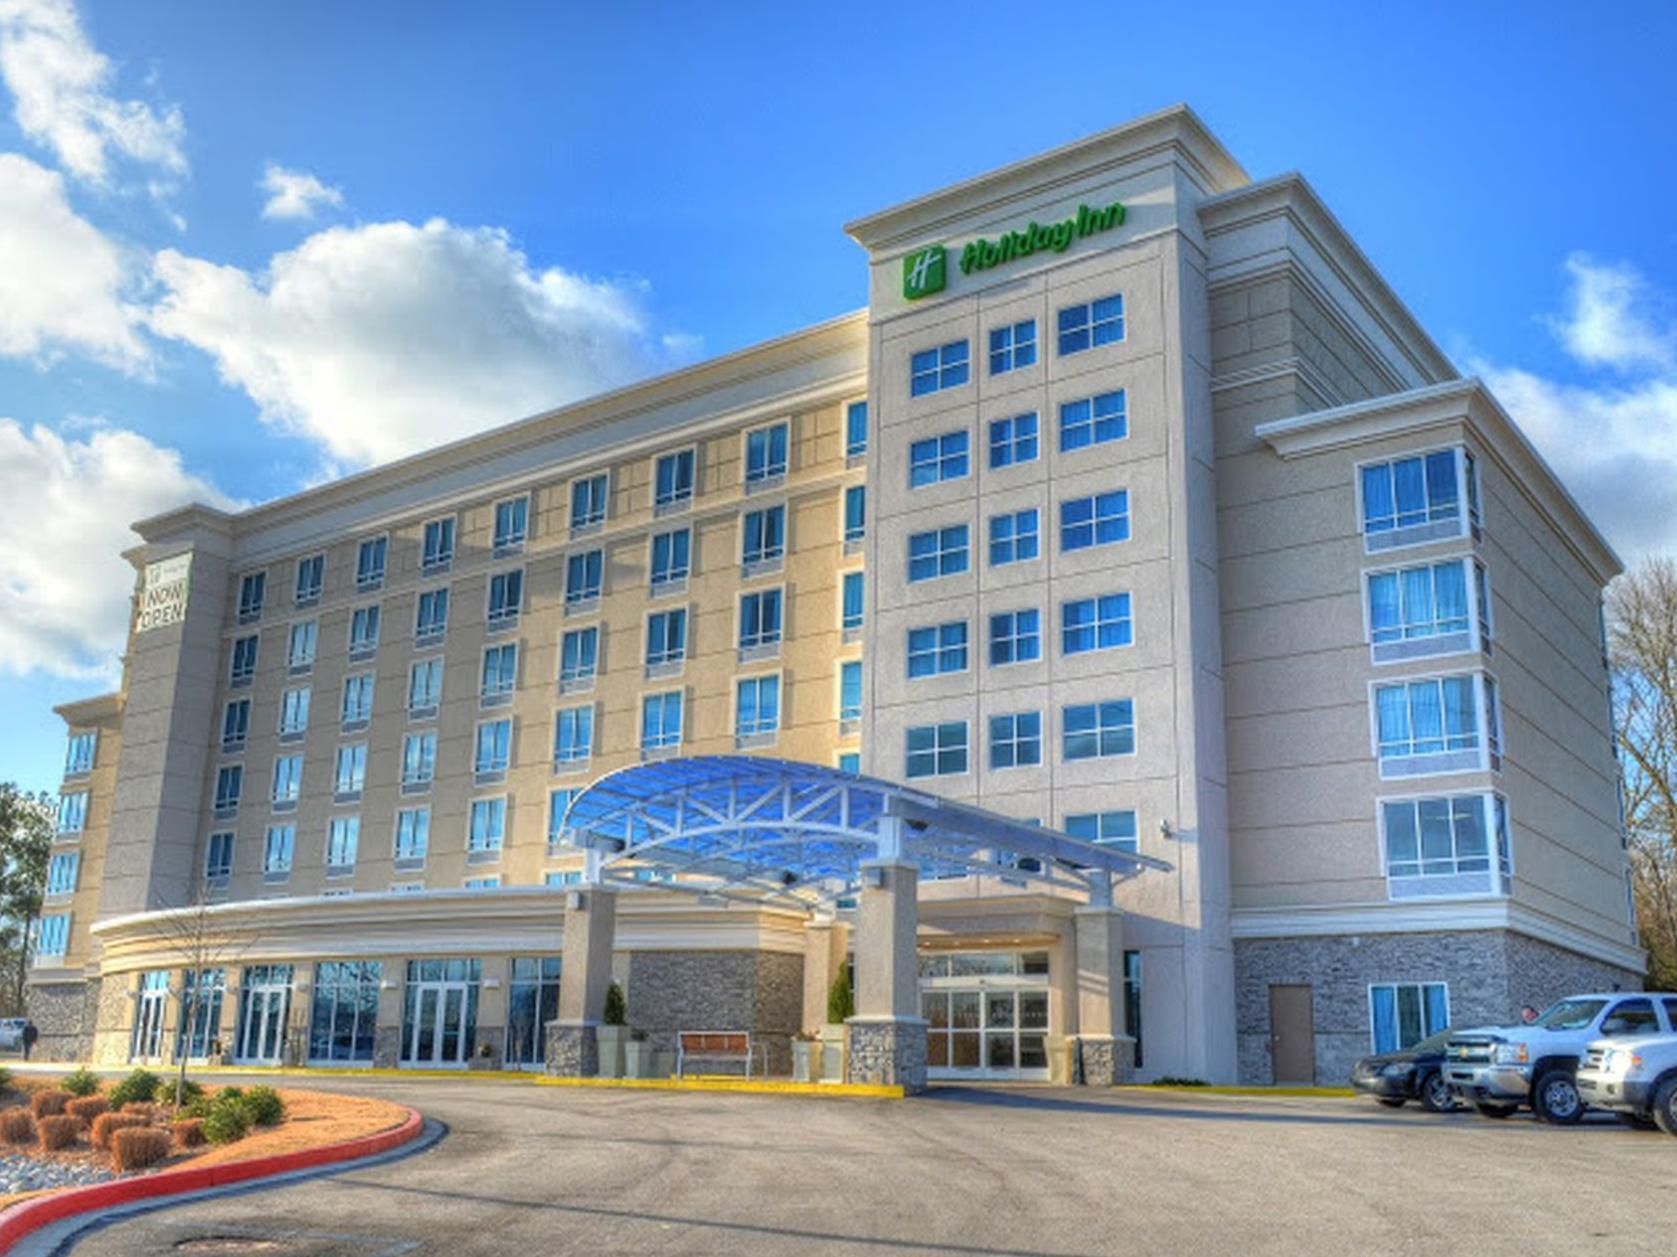 Holiday Inn Hotel & Suites Chattanooga-Hamilton Place Chattanooga (TN) - Exterior